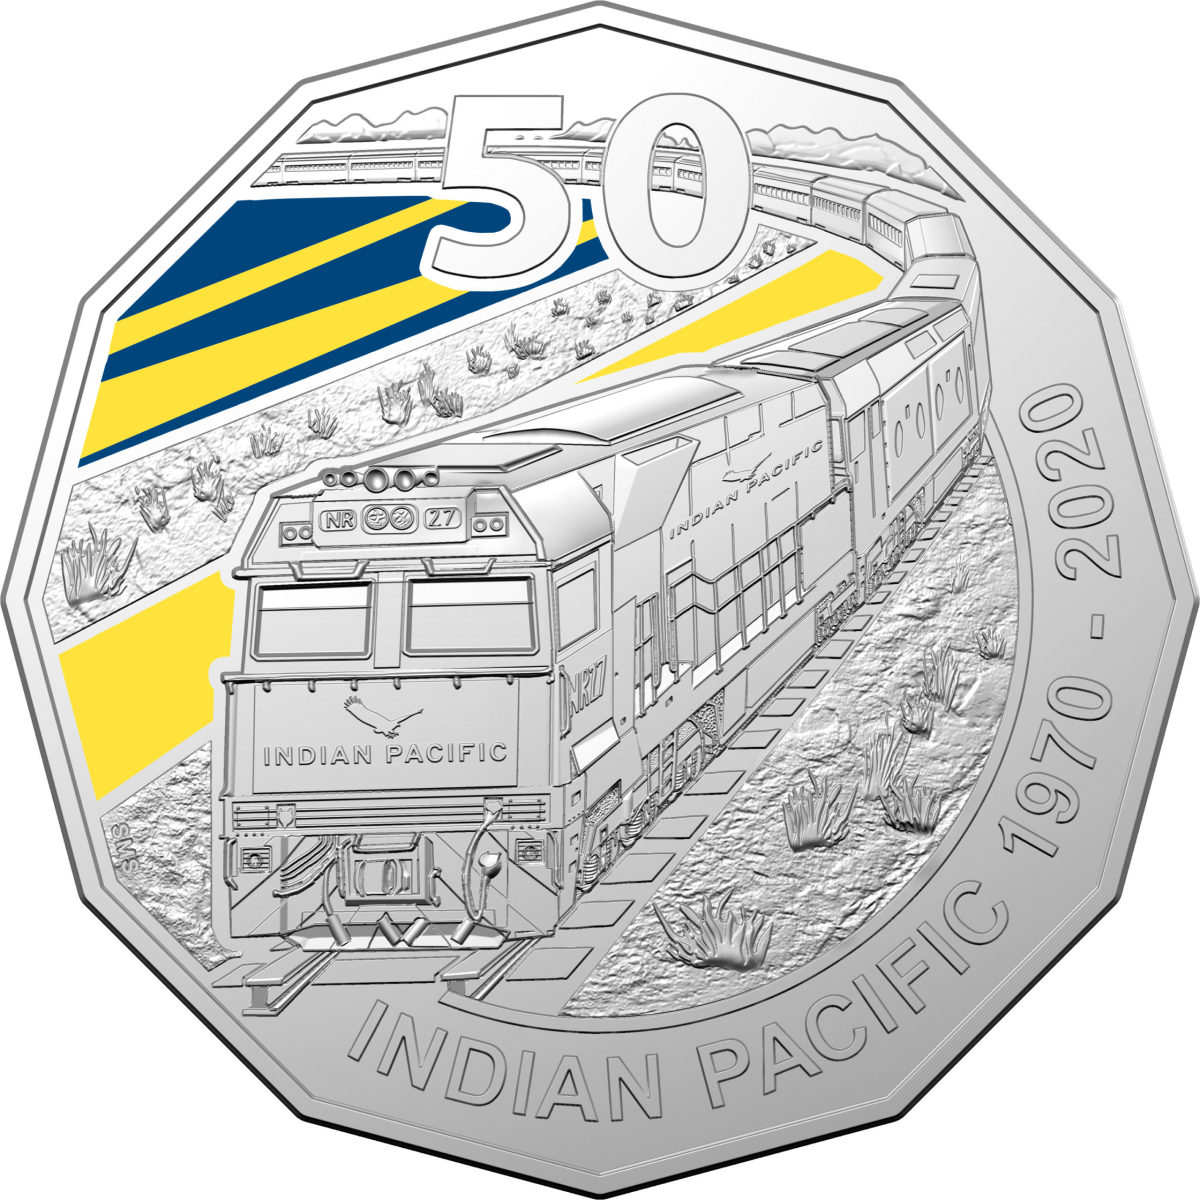 Indian Pacific - 2020 50c Coloured Uncirculated Coin